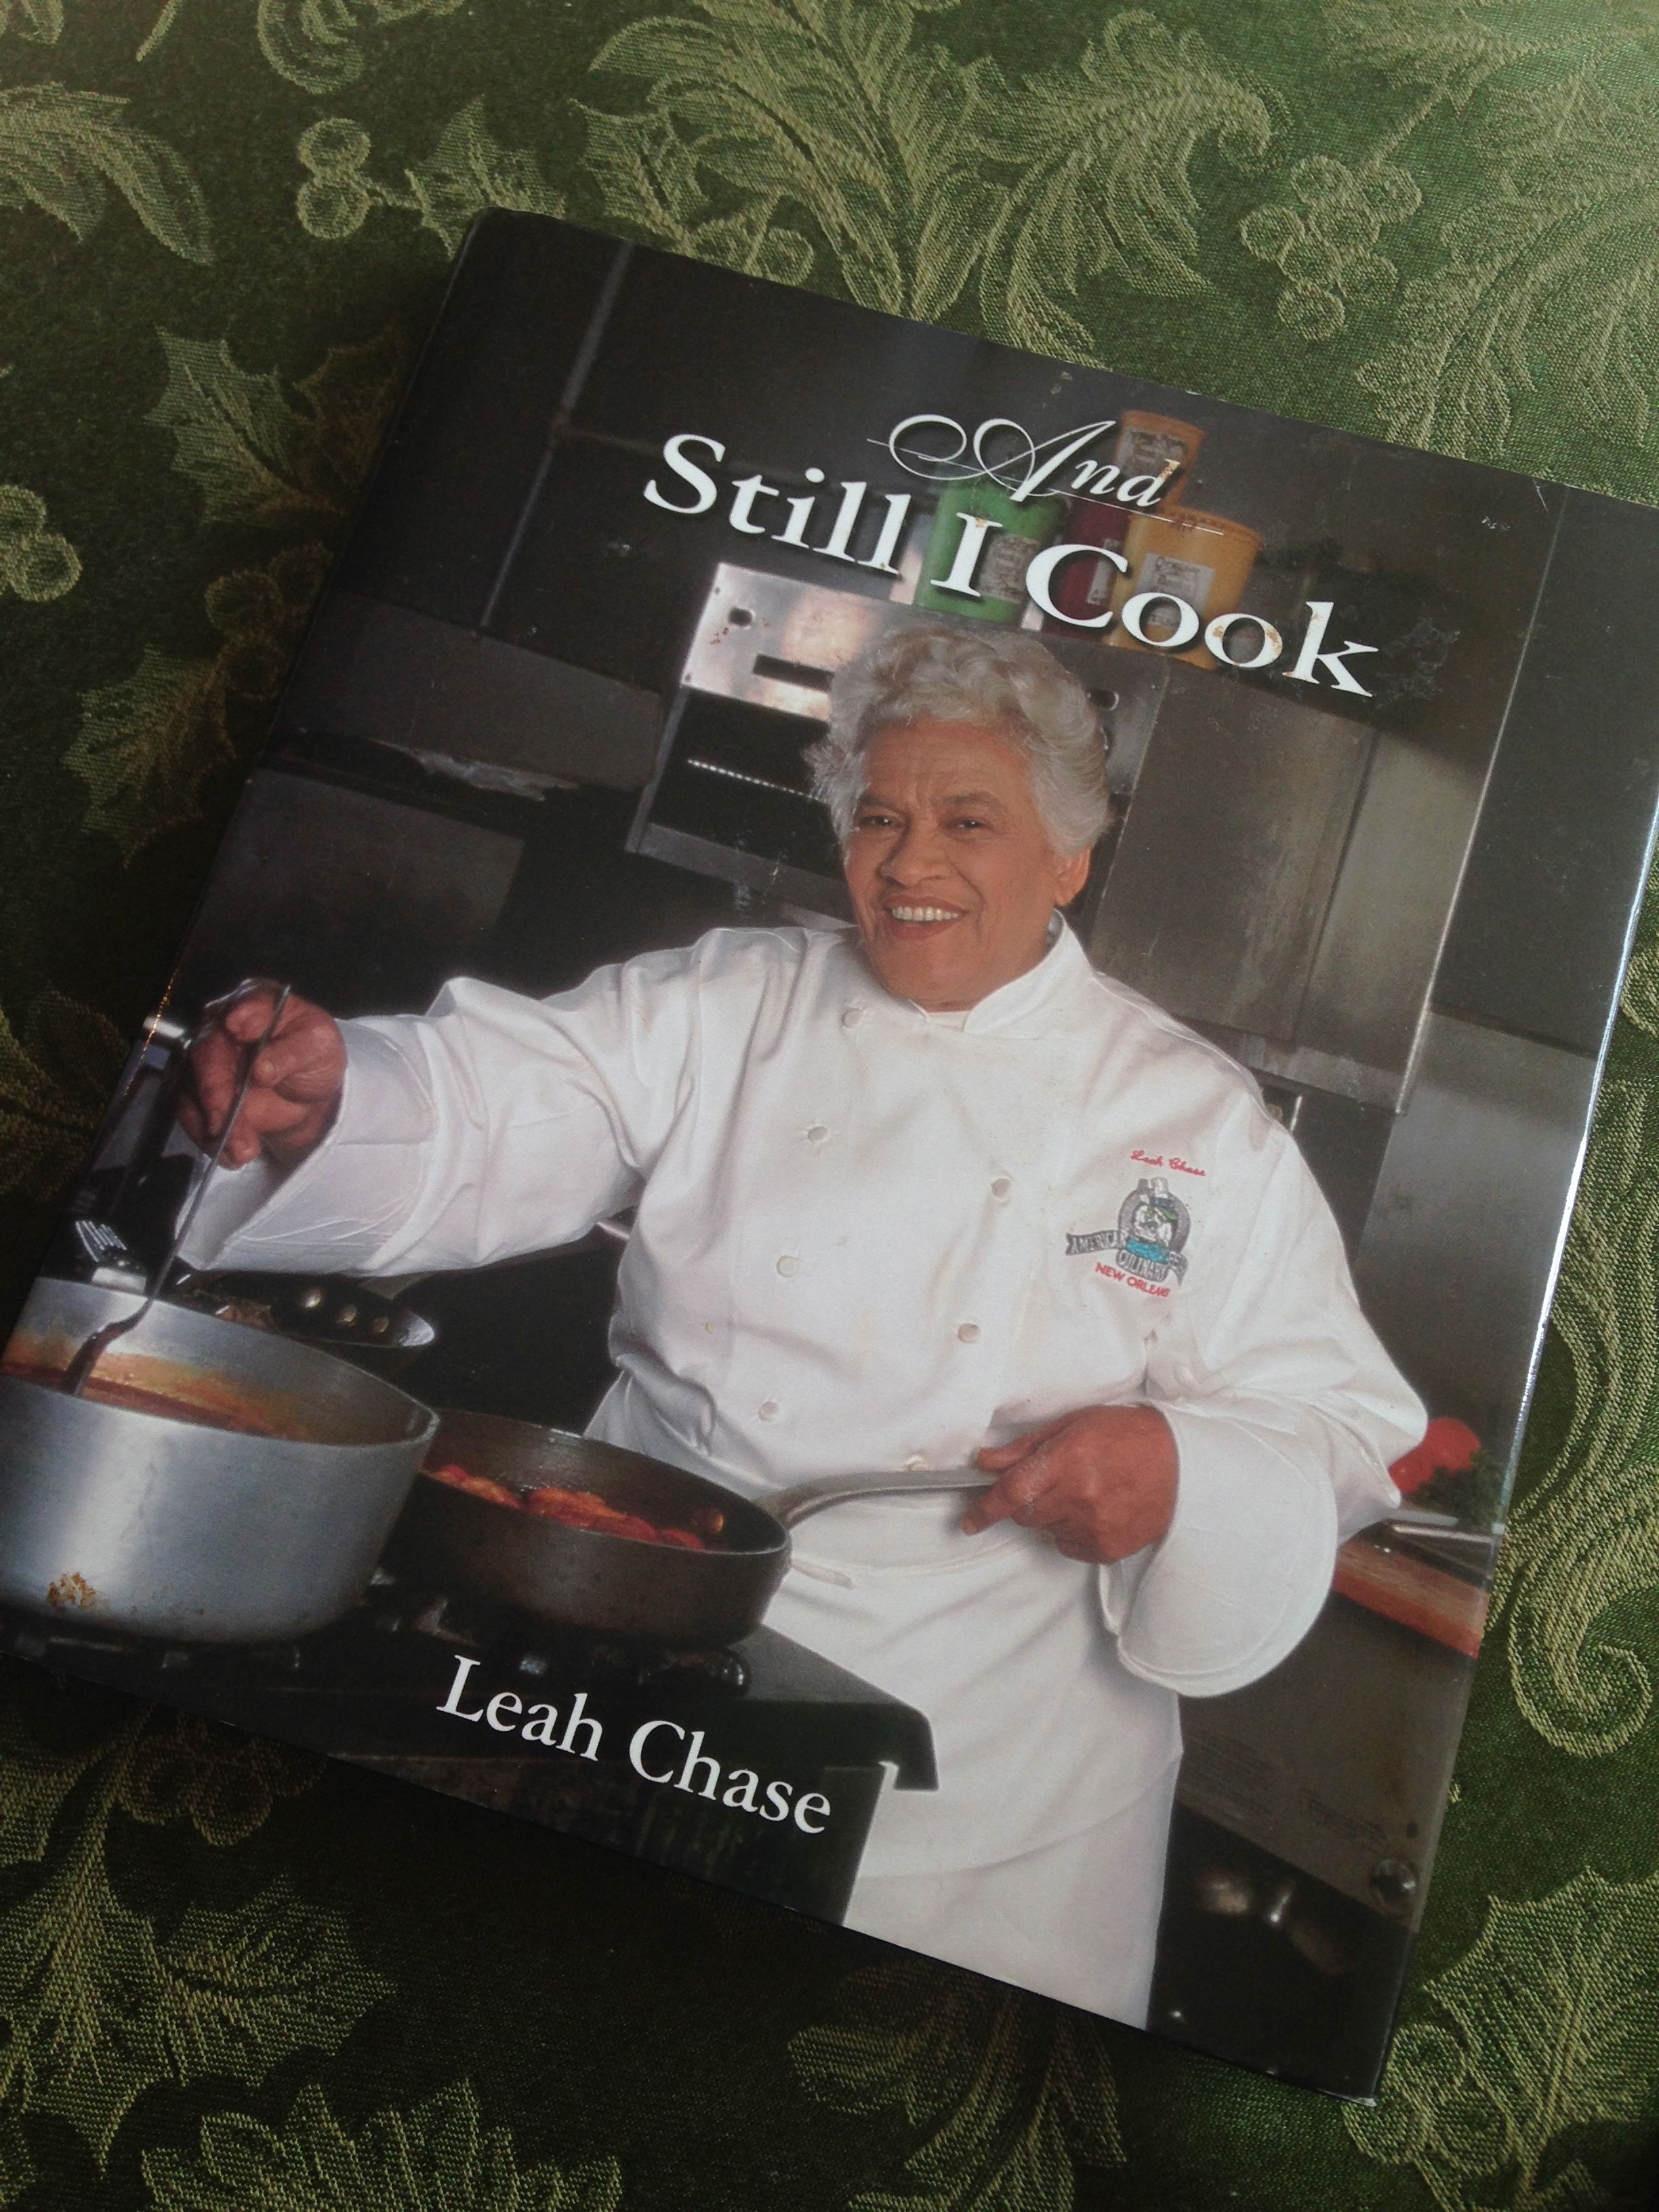 Ms. Leah Chase